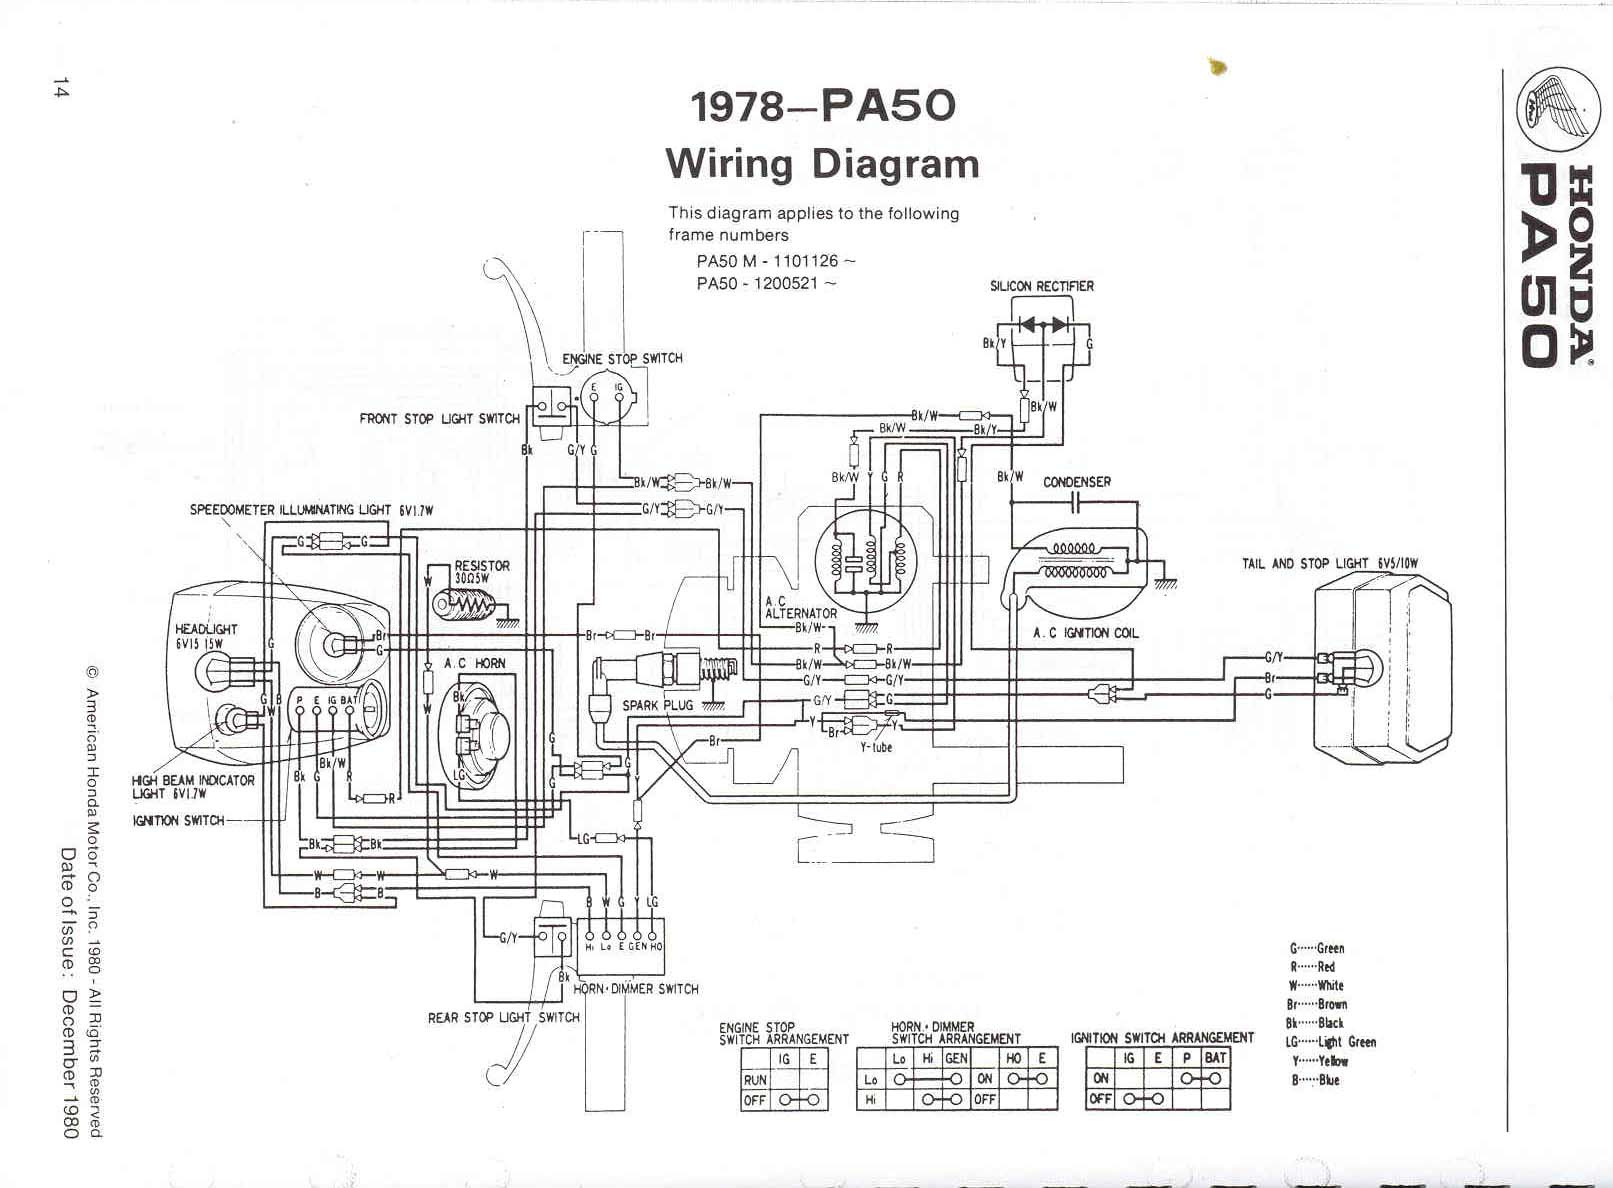 Re 78 Honda Express Wiring Diagram